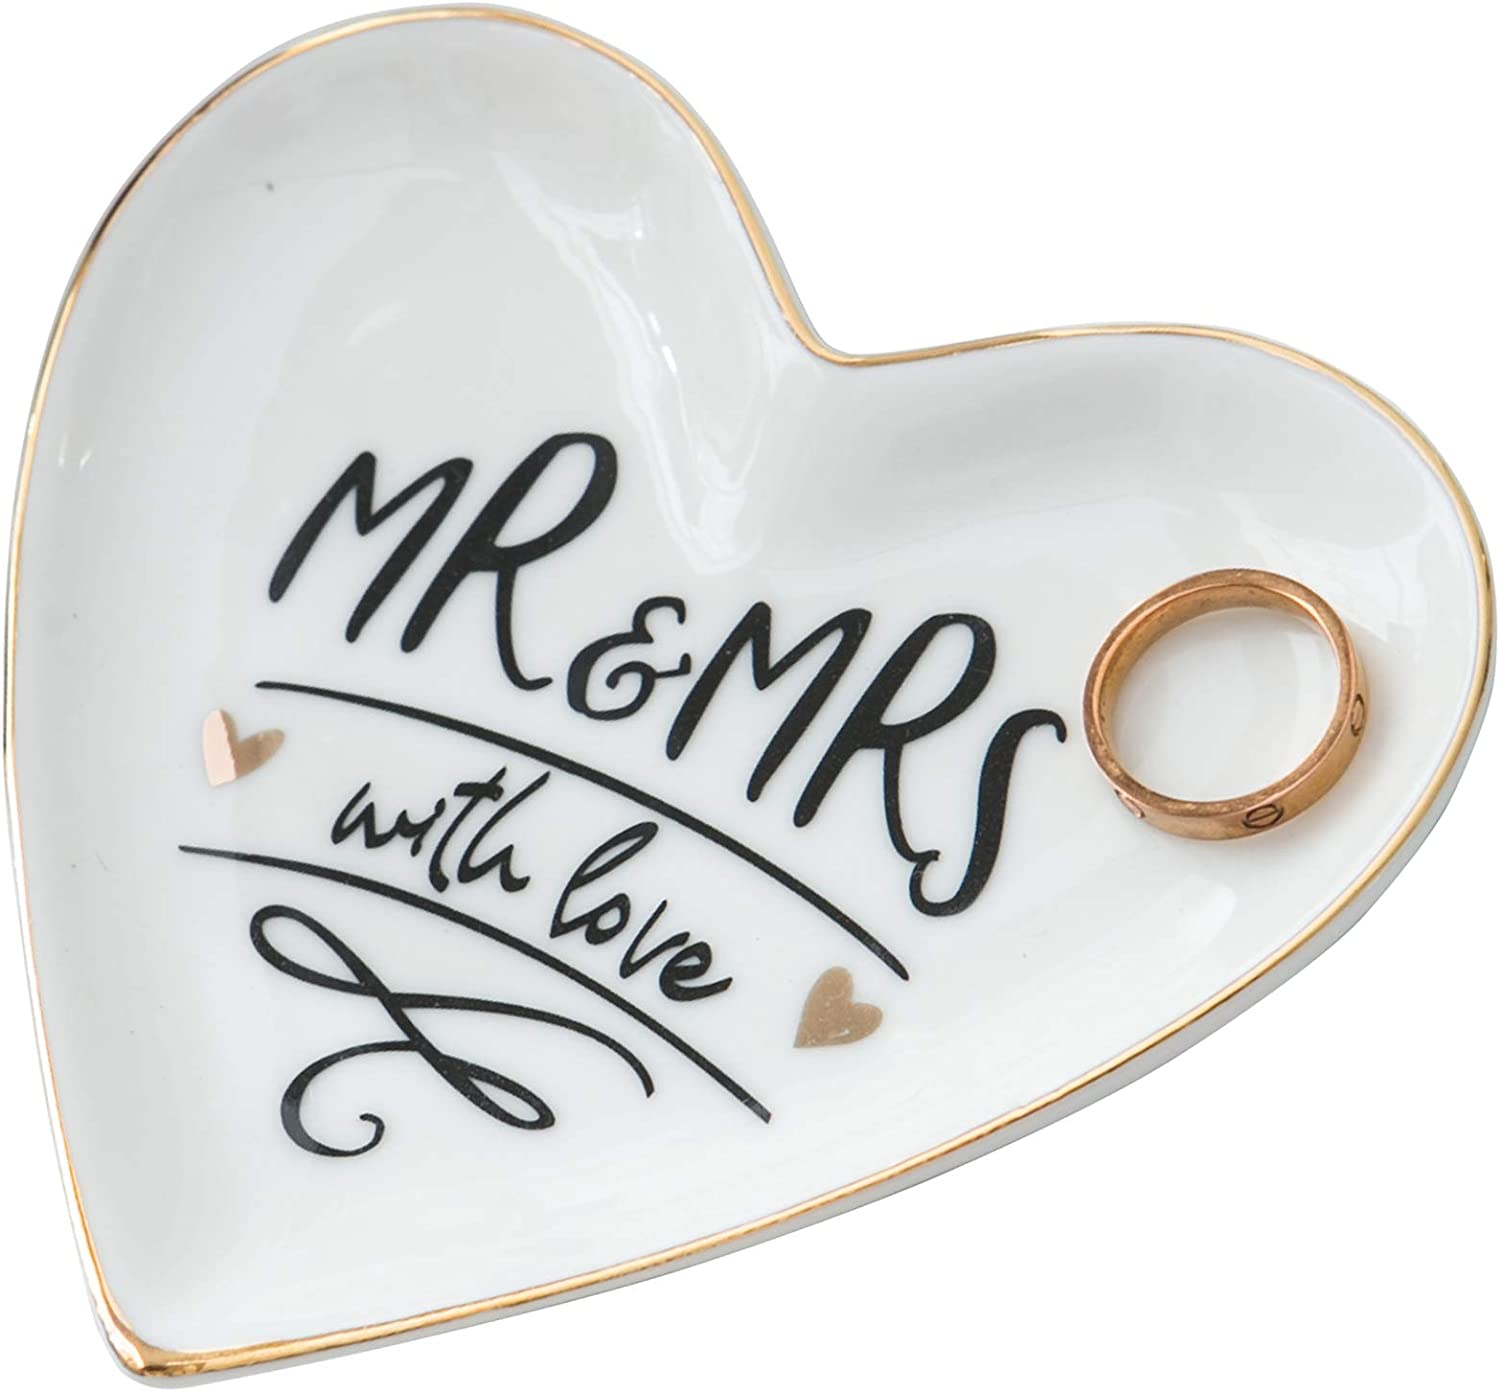 Kimdio Ring Dish Jewelry Holder Heart Shape Trinket Tray Ceramic Plate Mr and Mrs with Love Jewelry Organizer Home Decor Dish for Propose Marriage Birthday Wedding Mother's Day Christmas etc.